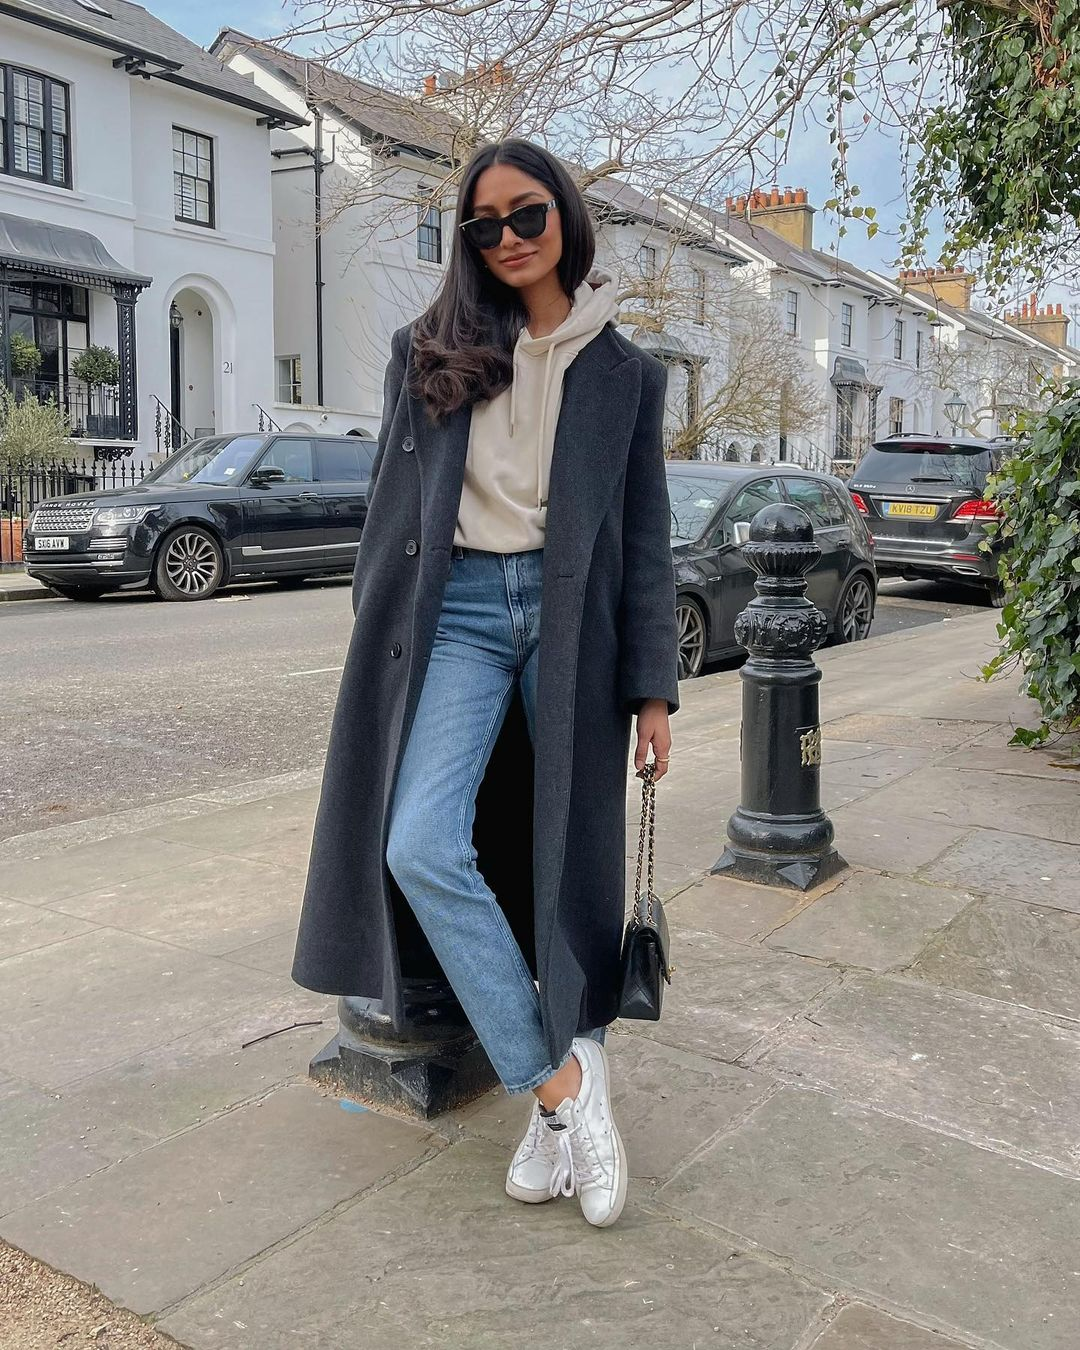 Hoodie and trench coat style for outfits with mom jeans